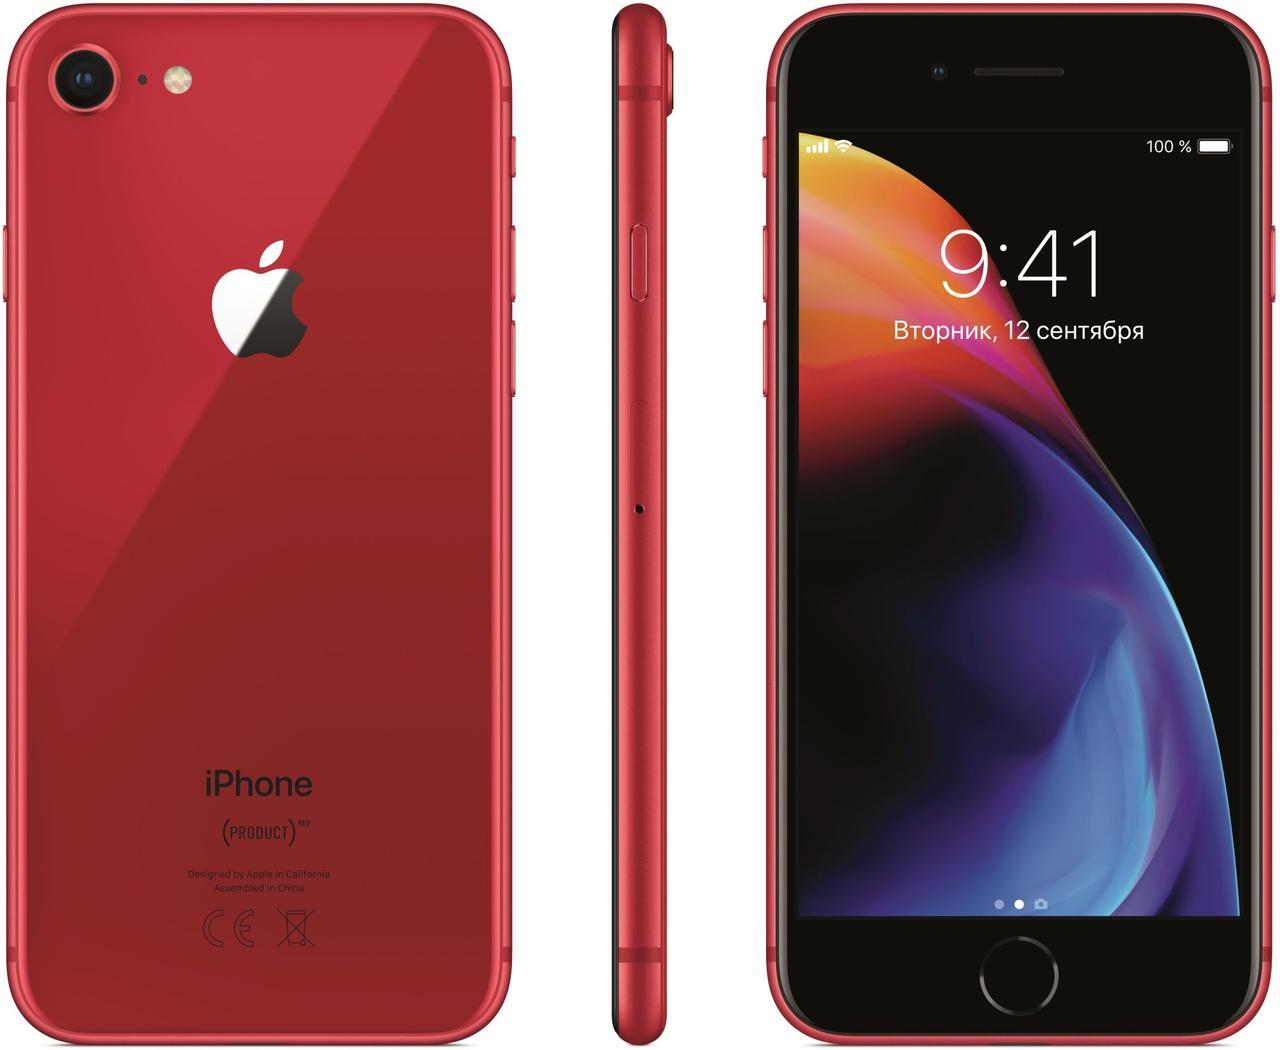 IPhone Xr 64Gb (PRODUCT) RED HK